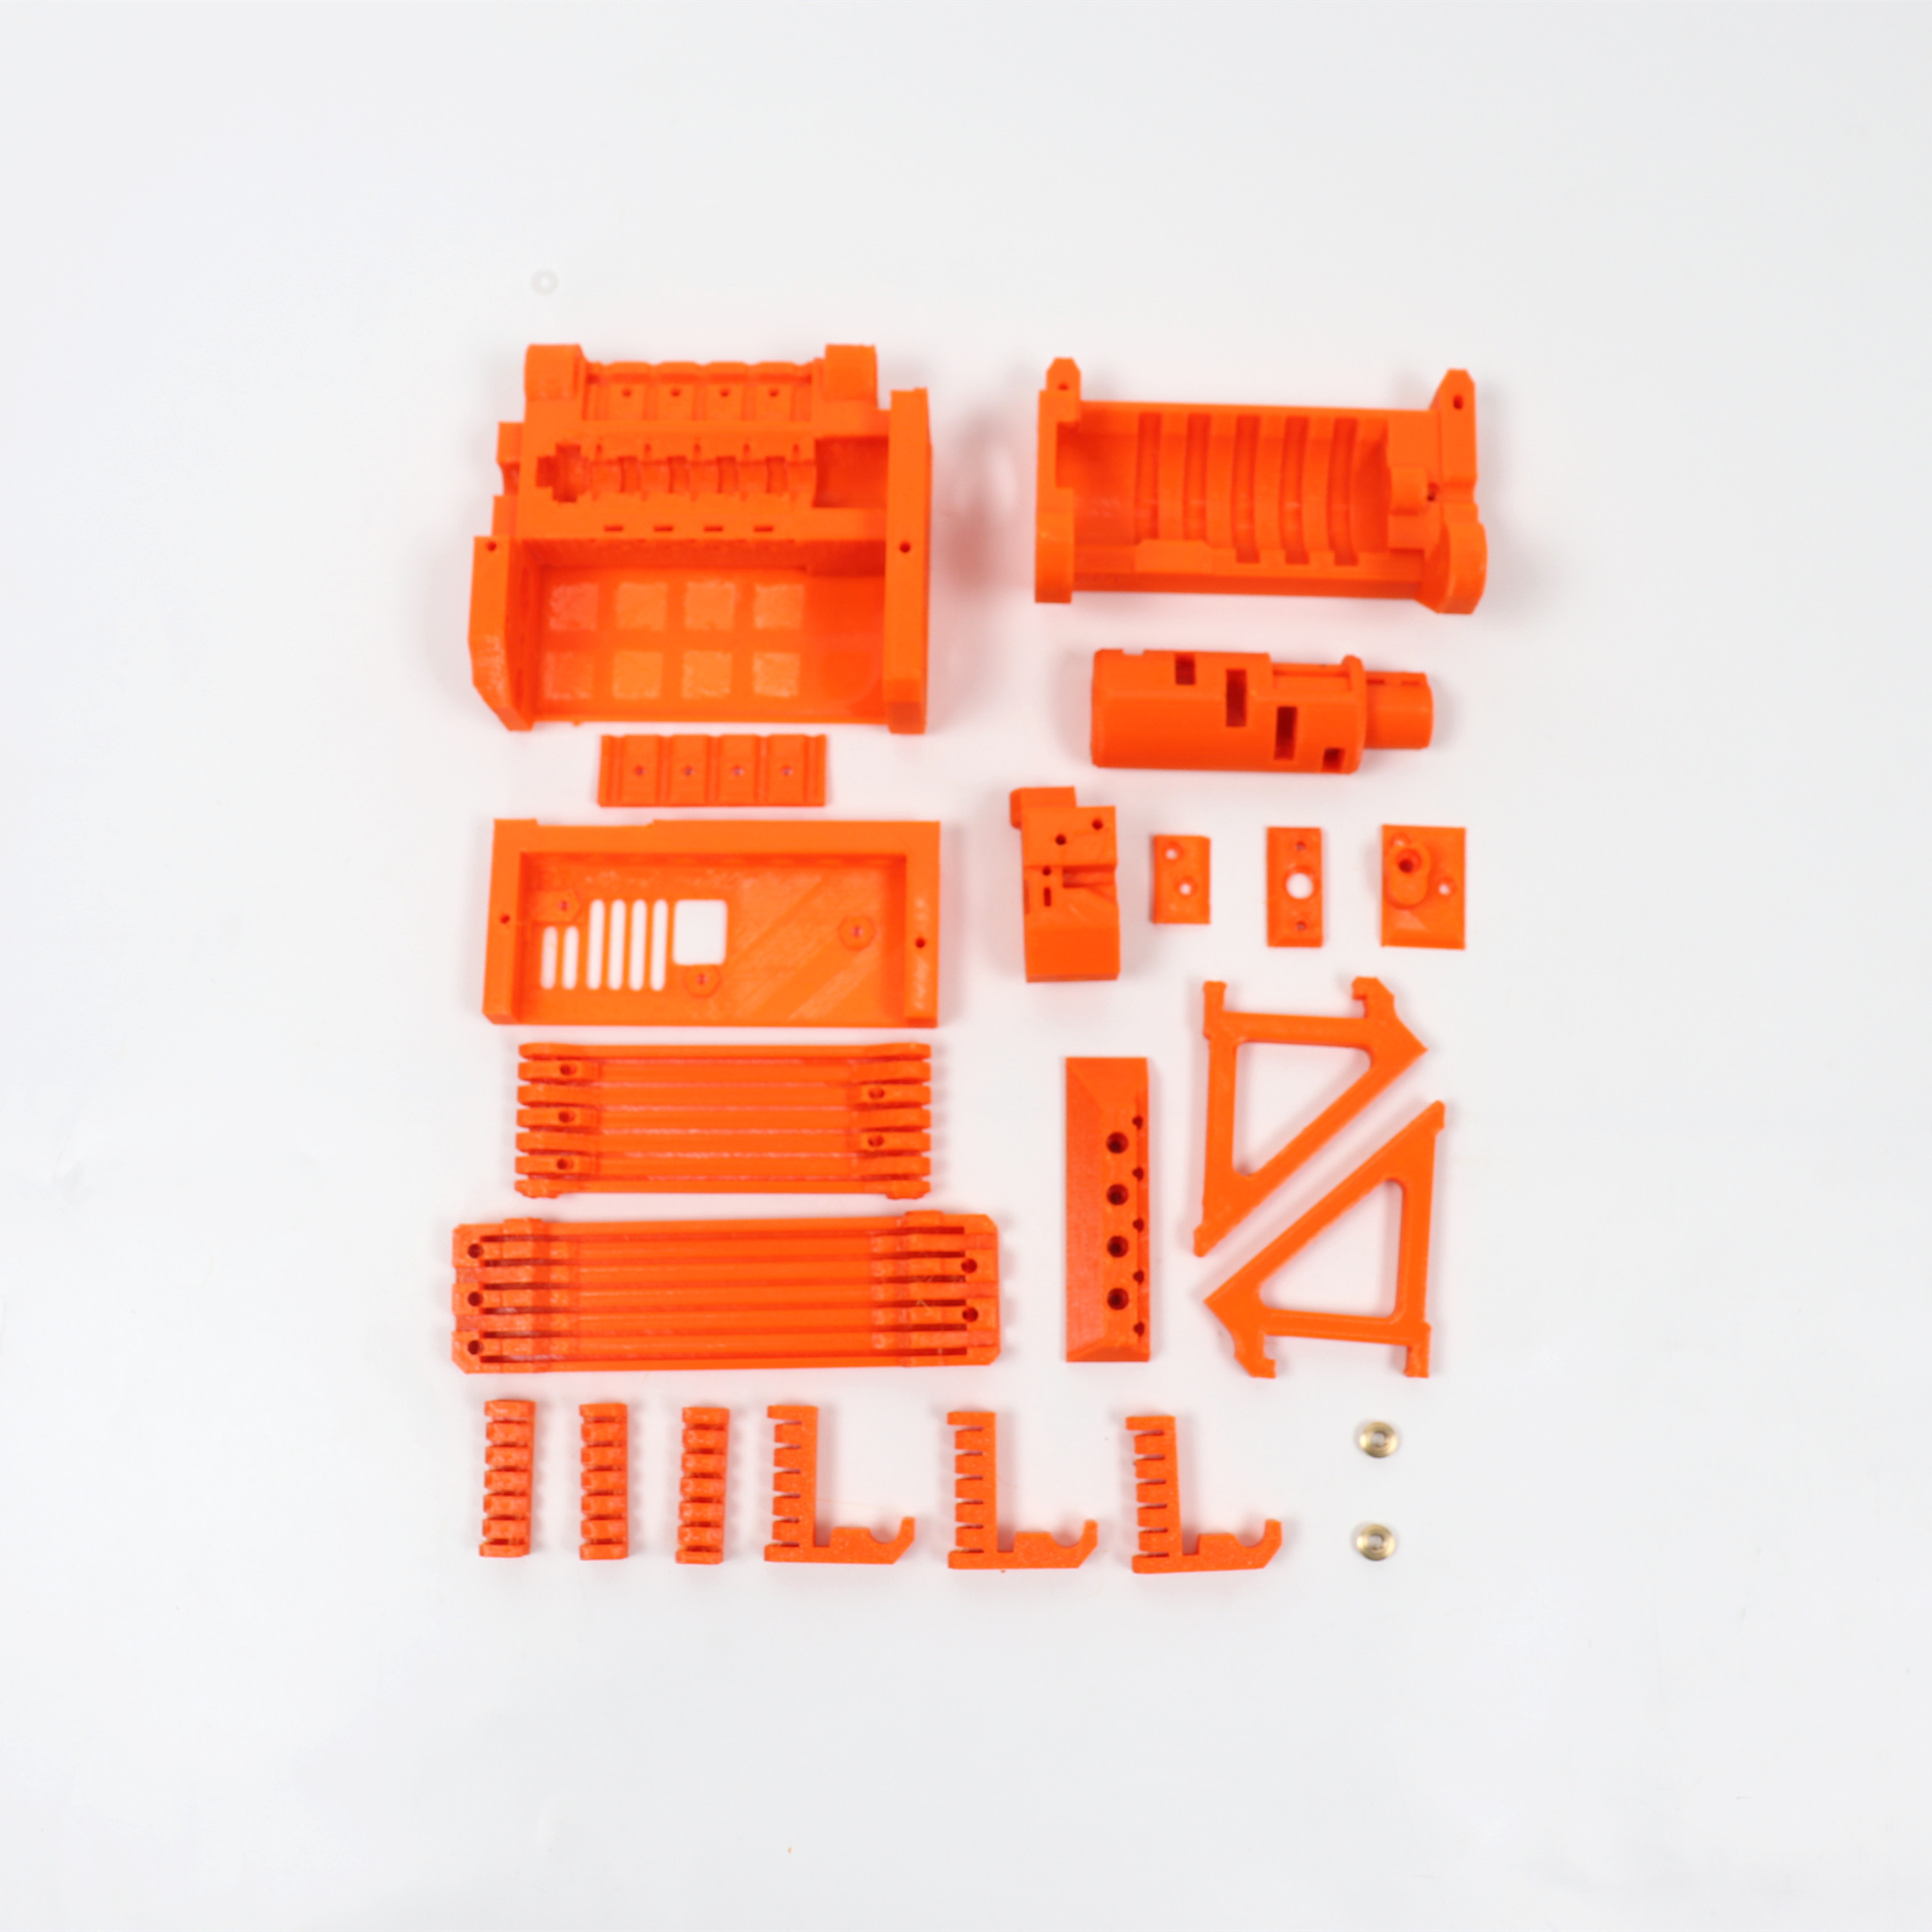 Prusa I3 MK3/MK3S MMU2S Multi Material 3d Printer PETG Printed Parts